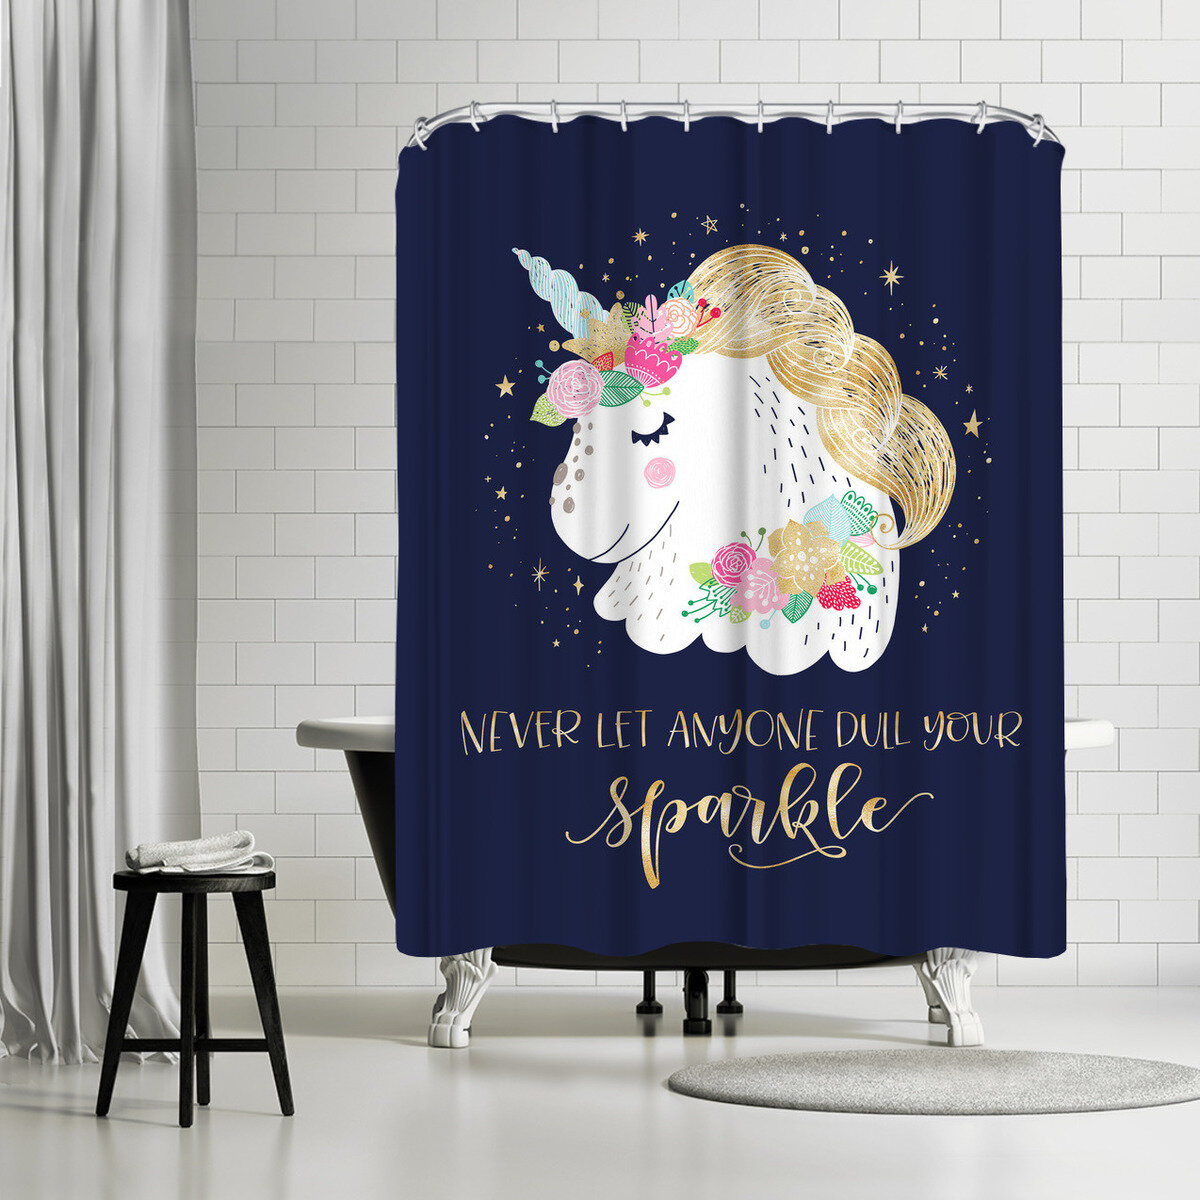 East Urban Home Elena David Sparkly Unicorn Single Shower Curtain Wayfair